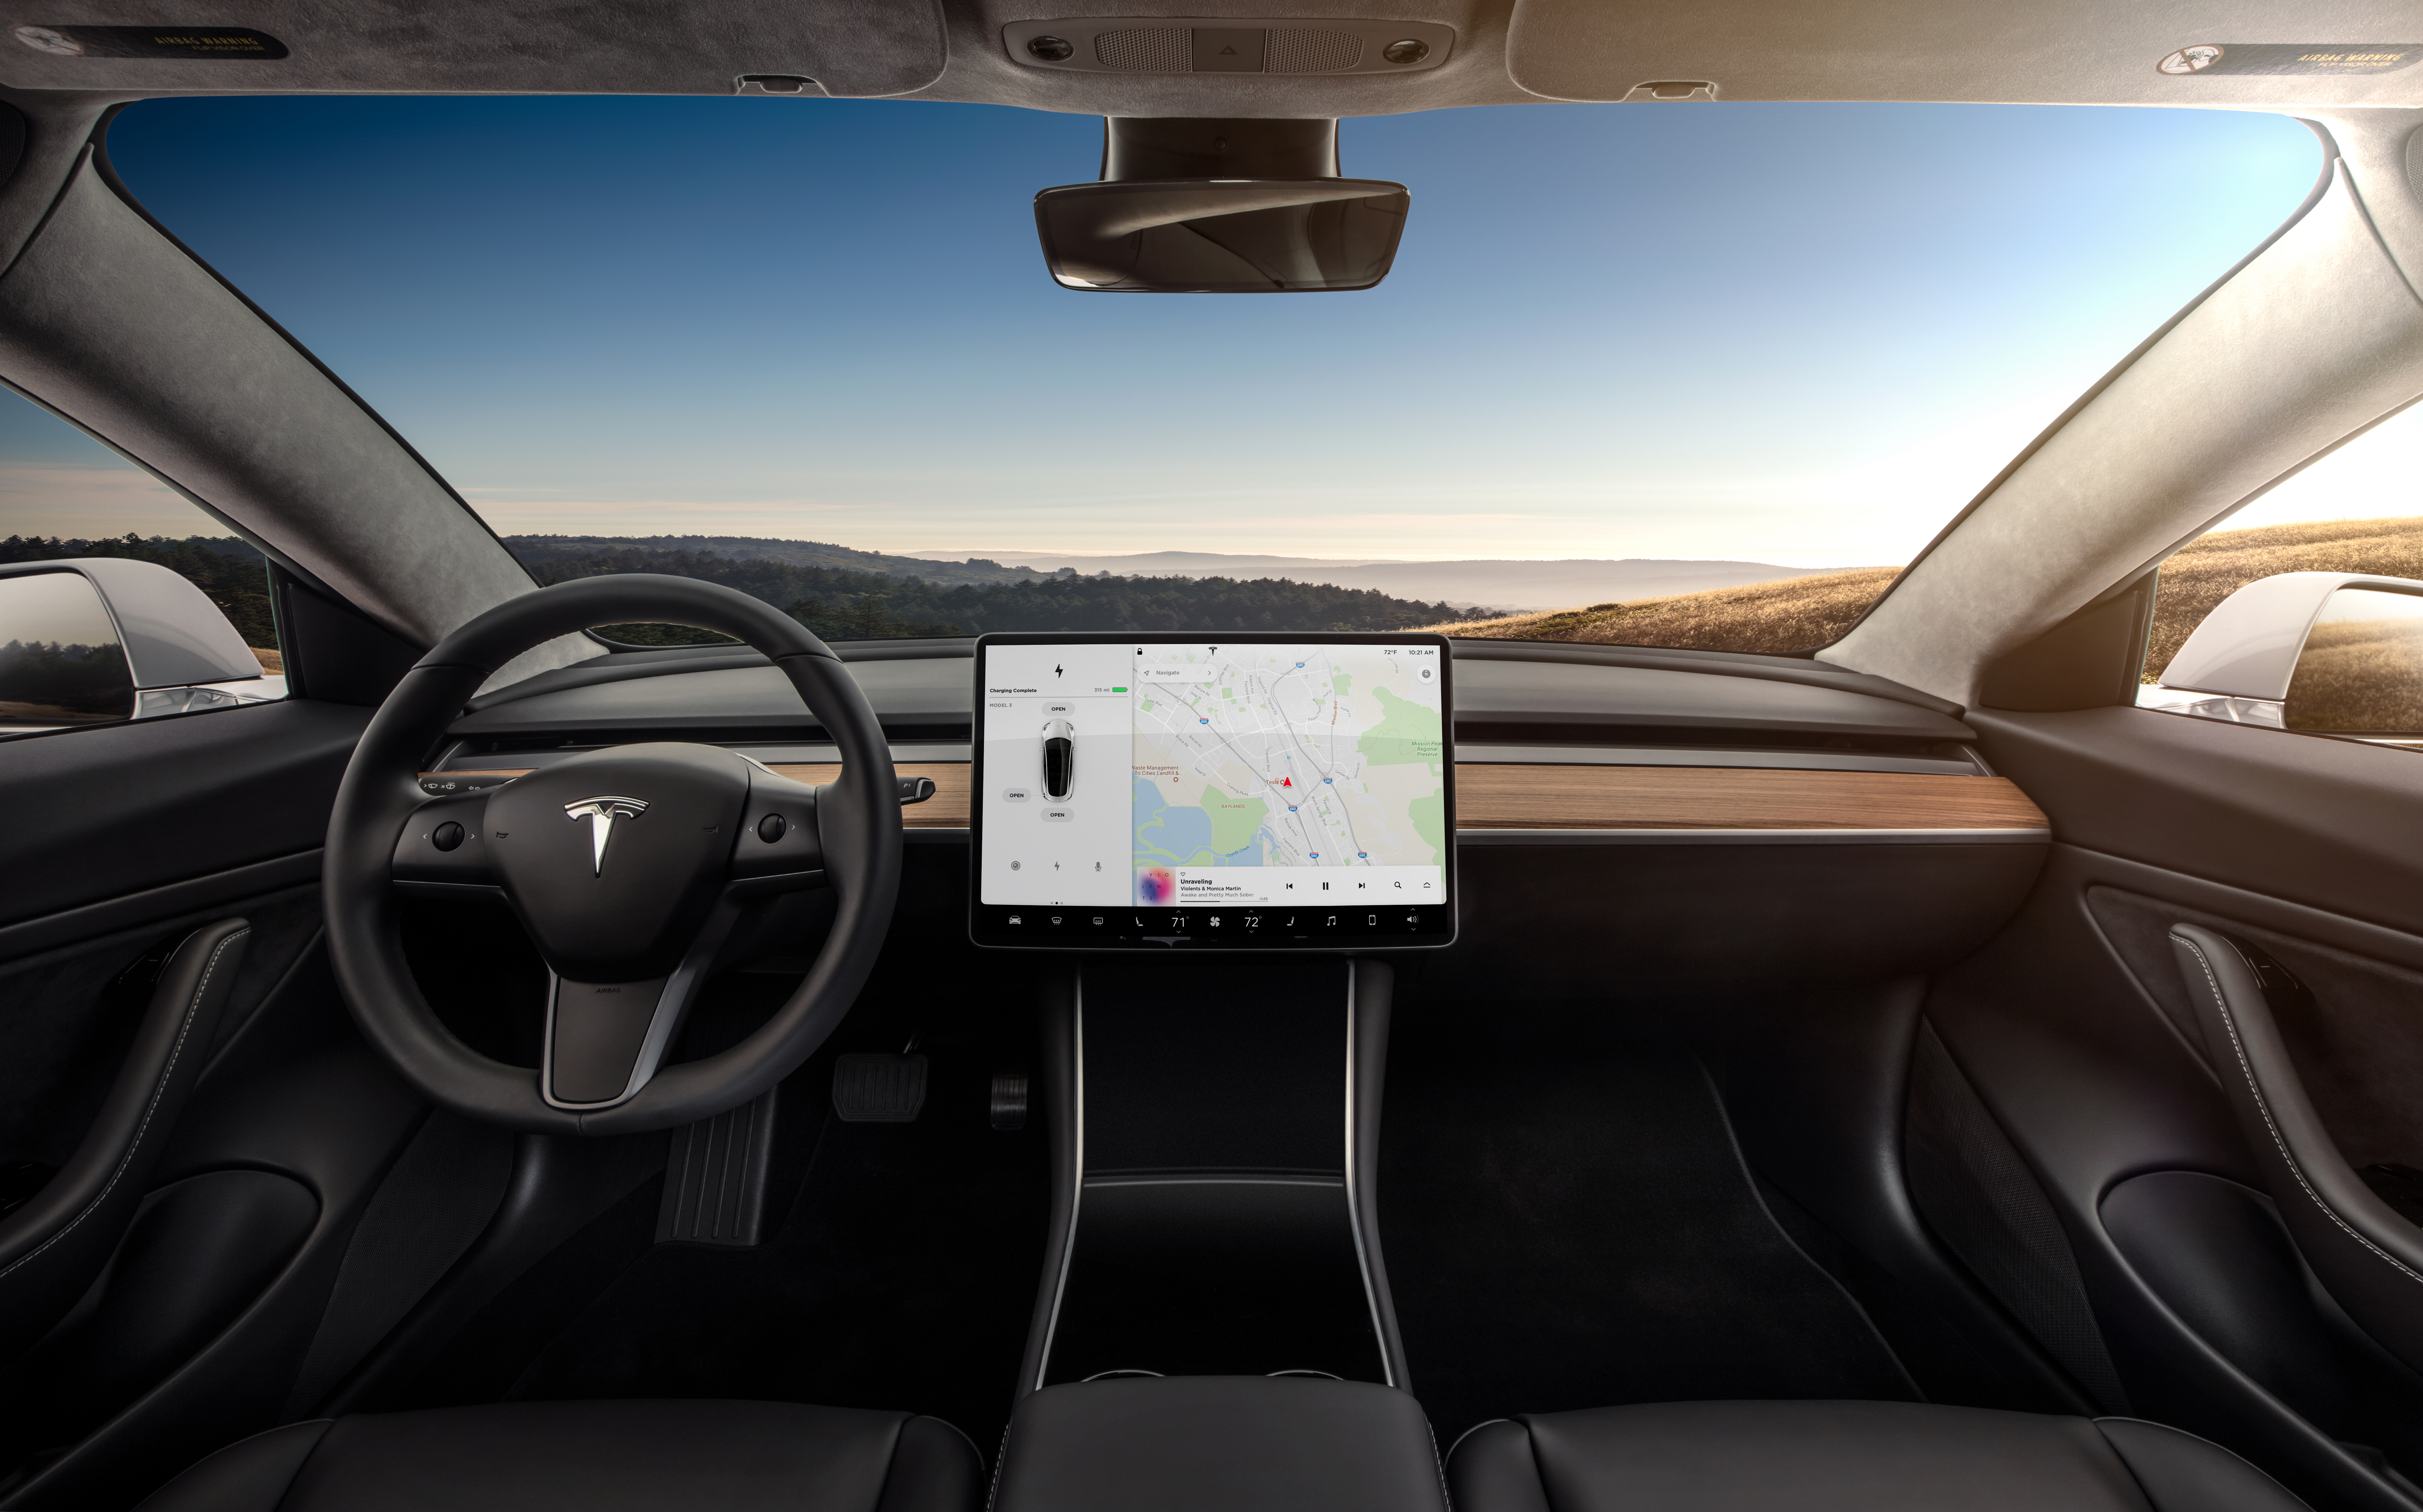 The 2018 Tesla Model 3 looks quite unlike other cars inside. But is the all-touchscreen interface as annoying as some, or something better?